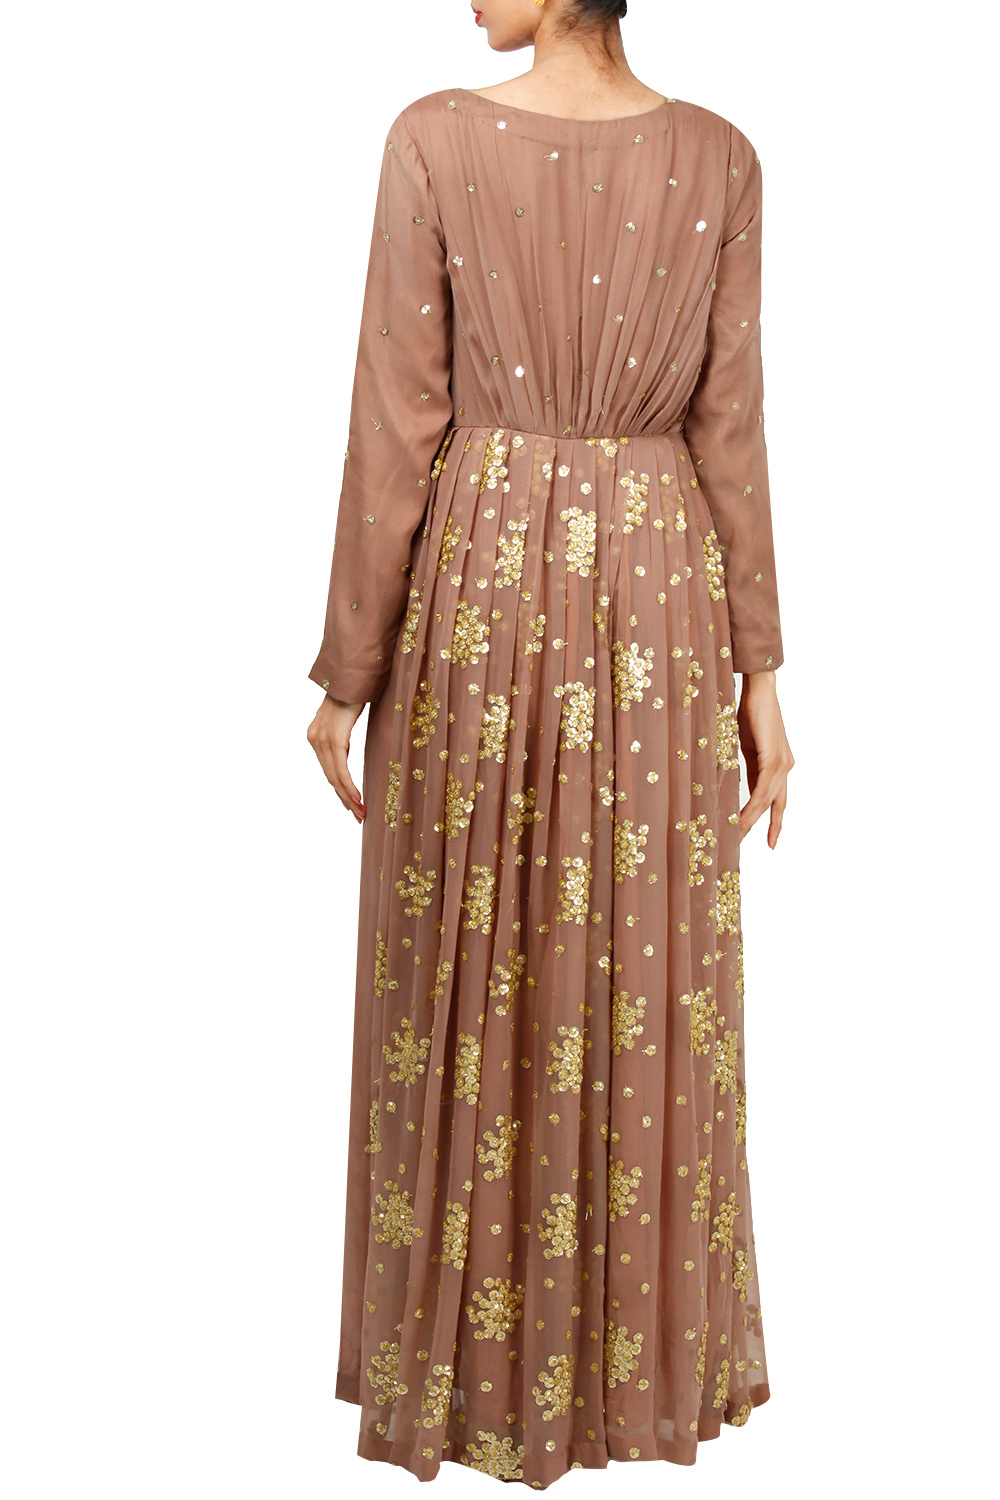 d60b769a07 Pastel brown hand embroidered kurta with dupatta by Abhi Singh ...